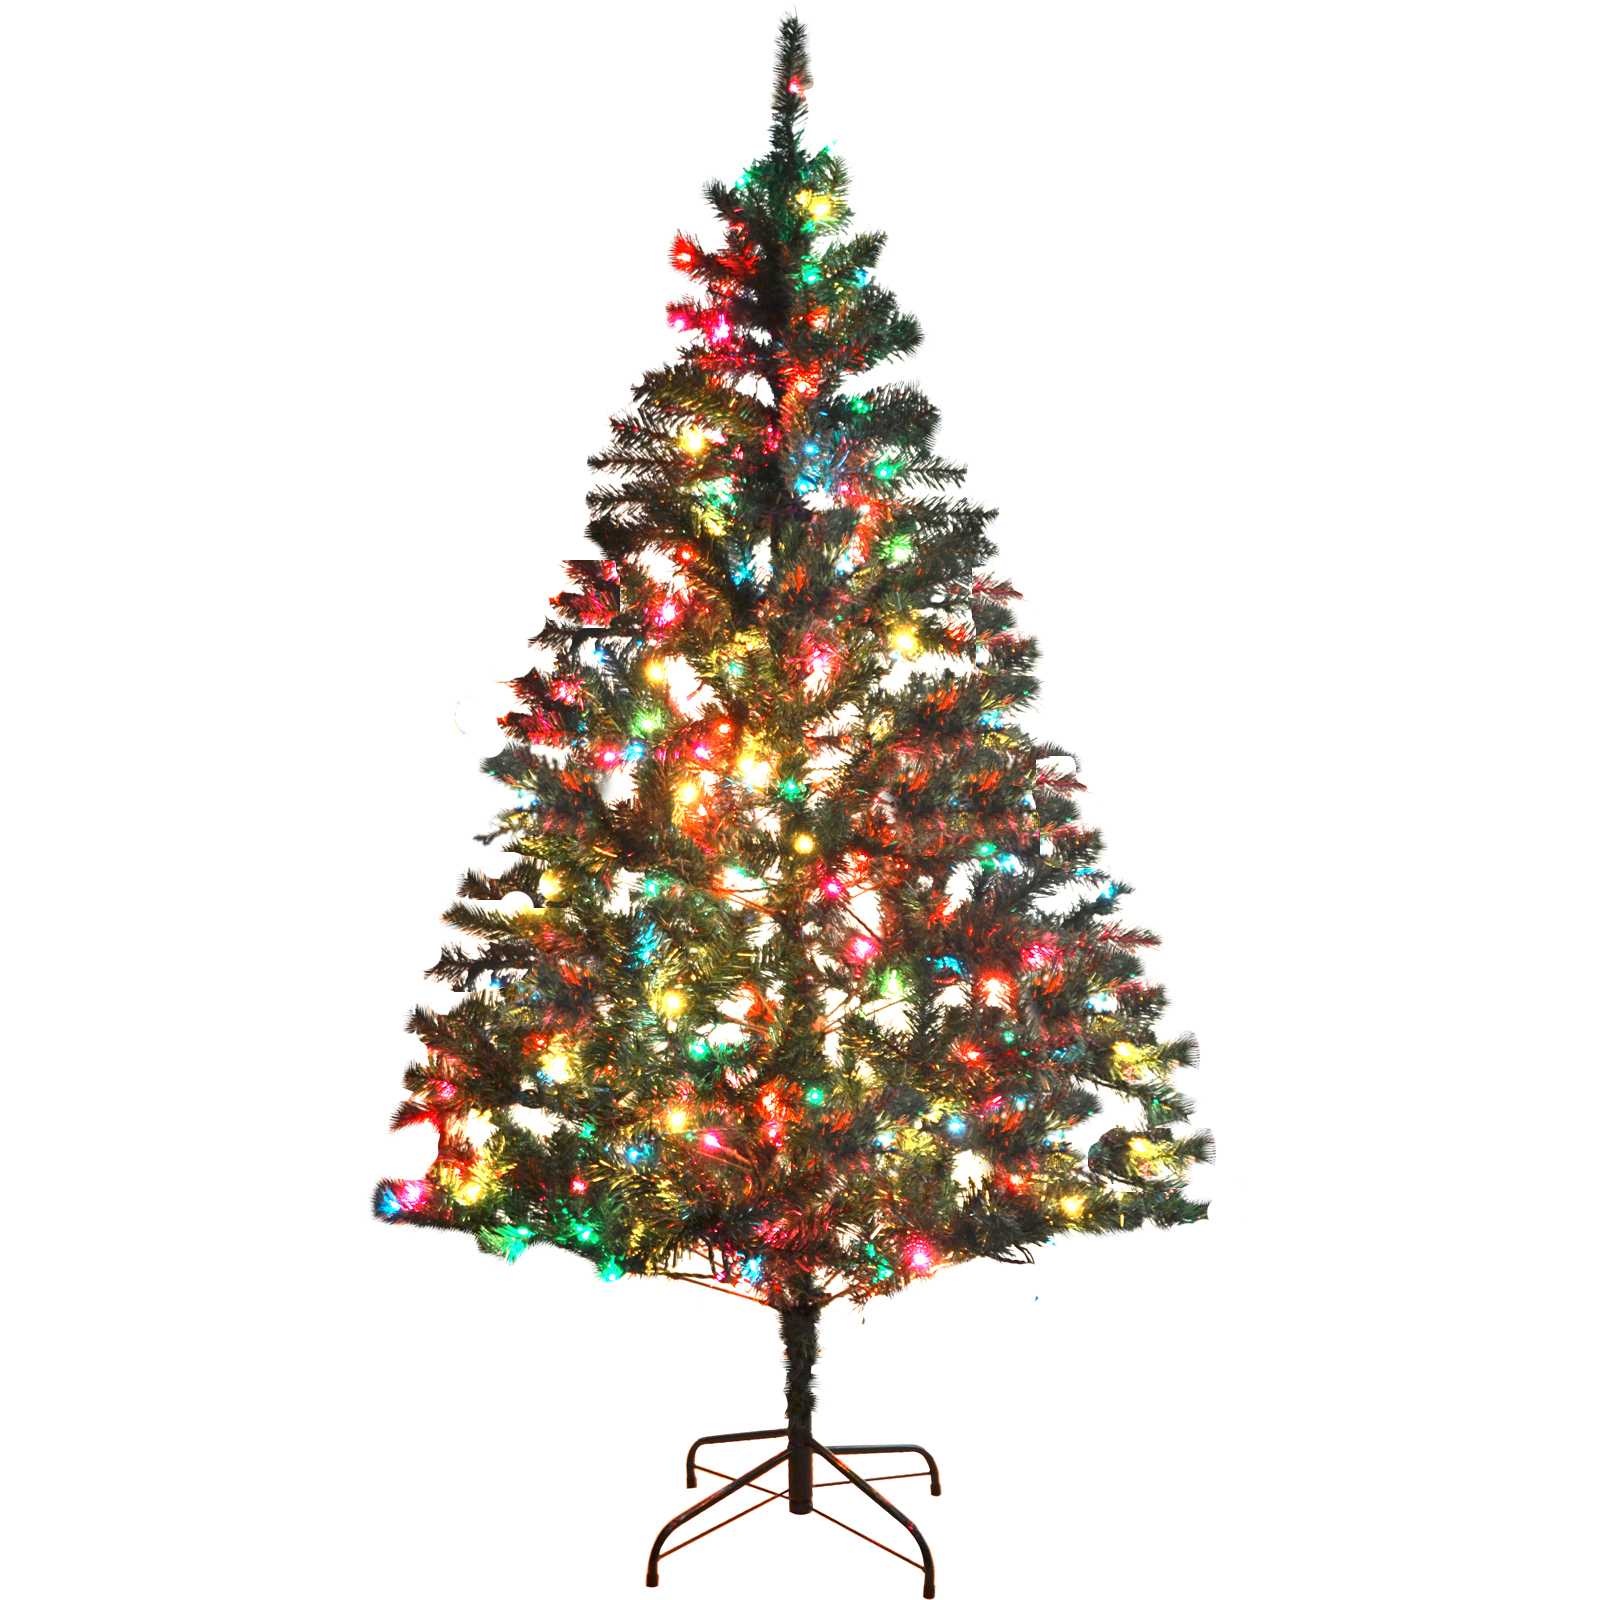 Artificial Christmas Trees: Pre-Lit 6' Green Artificial Christmas Tree, USA, Multi